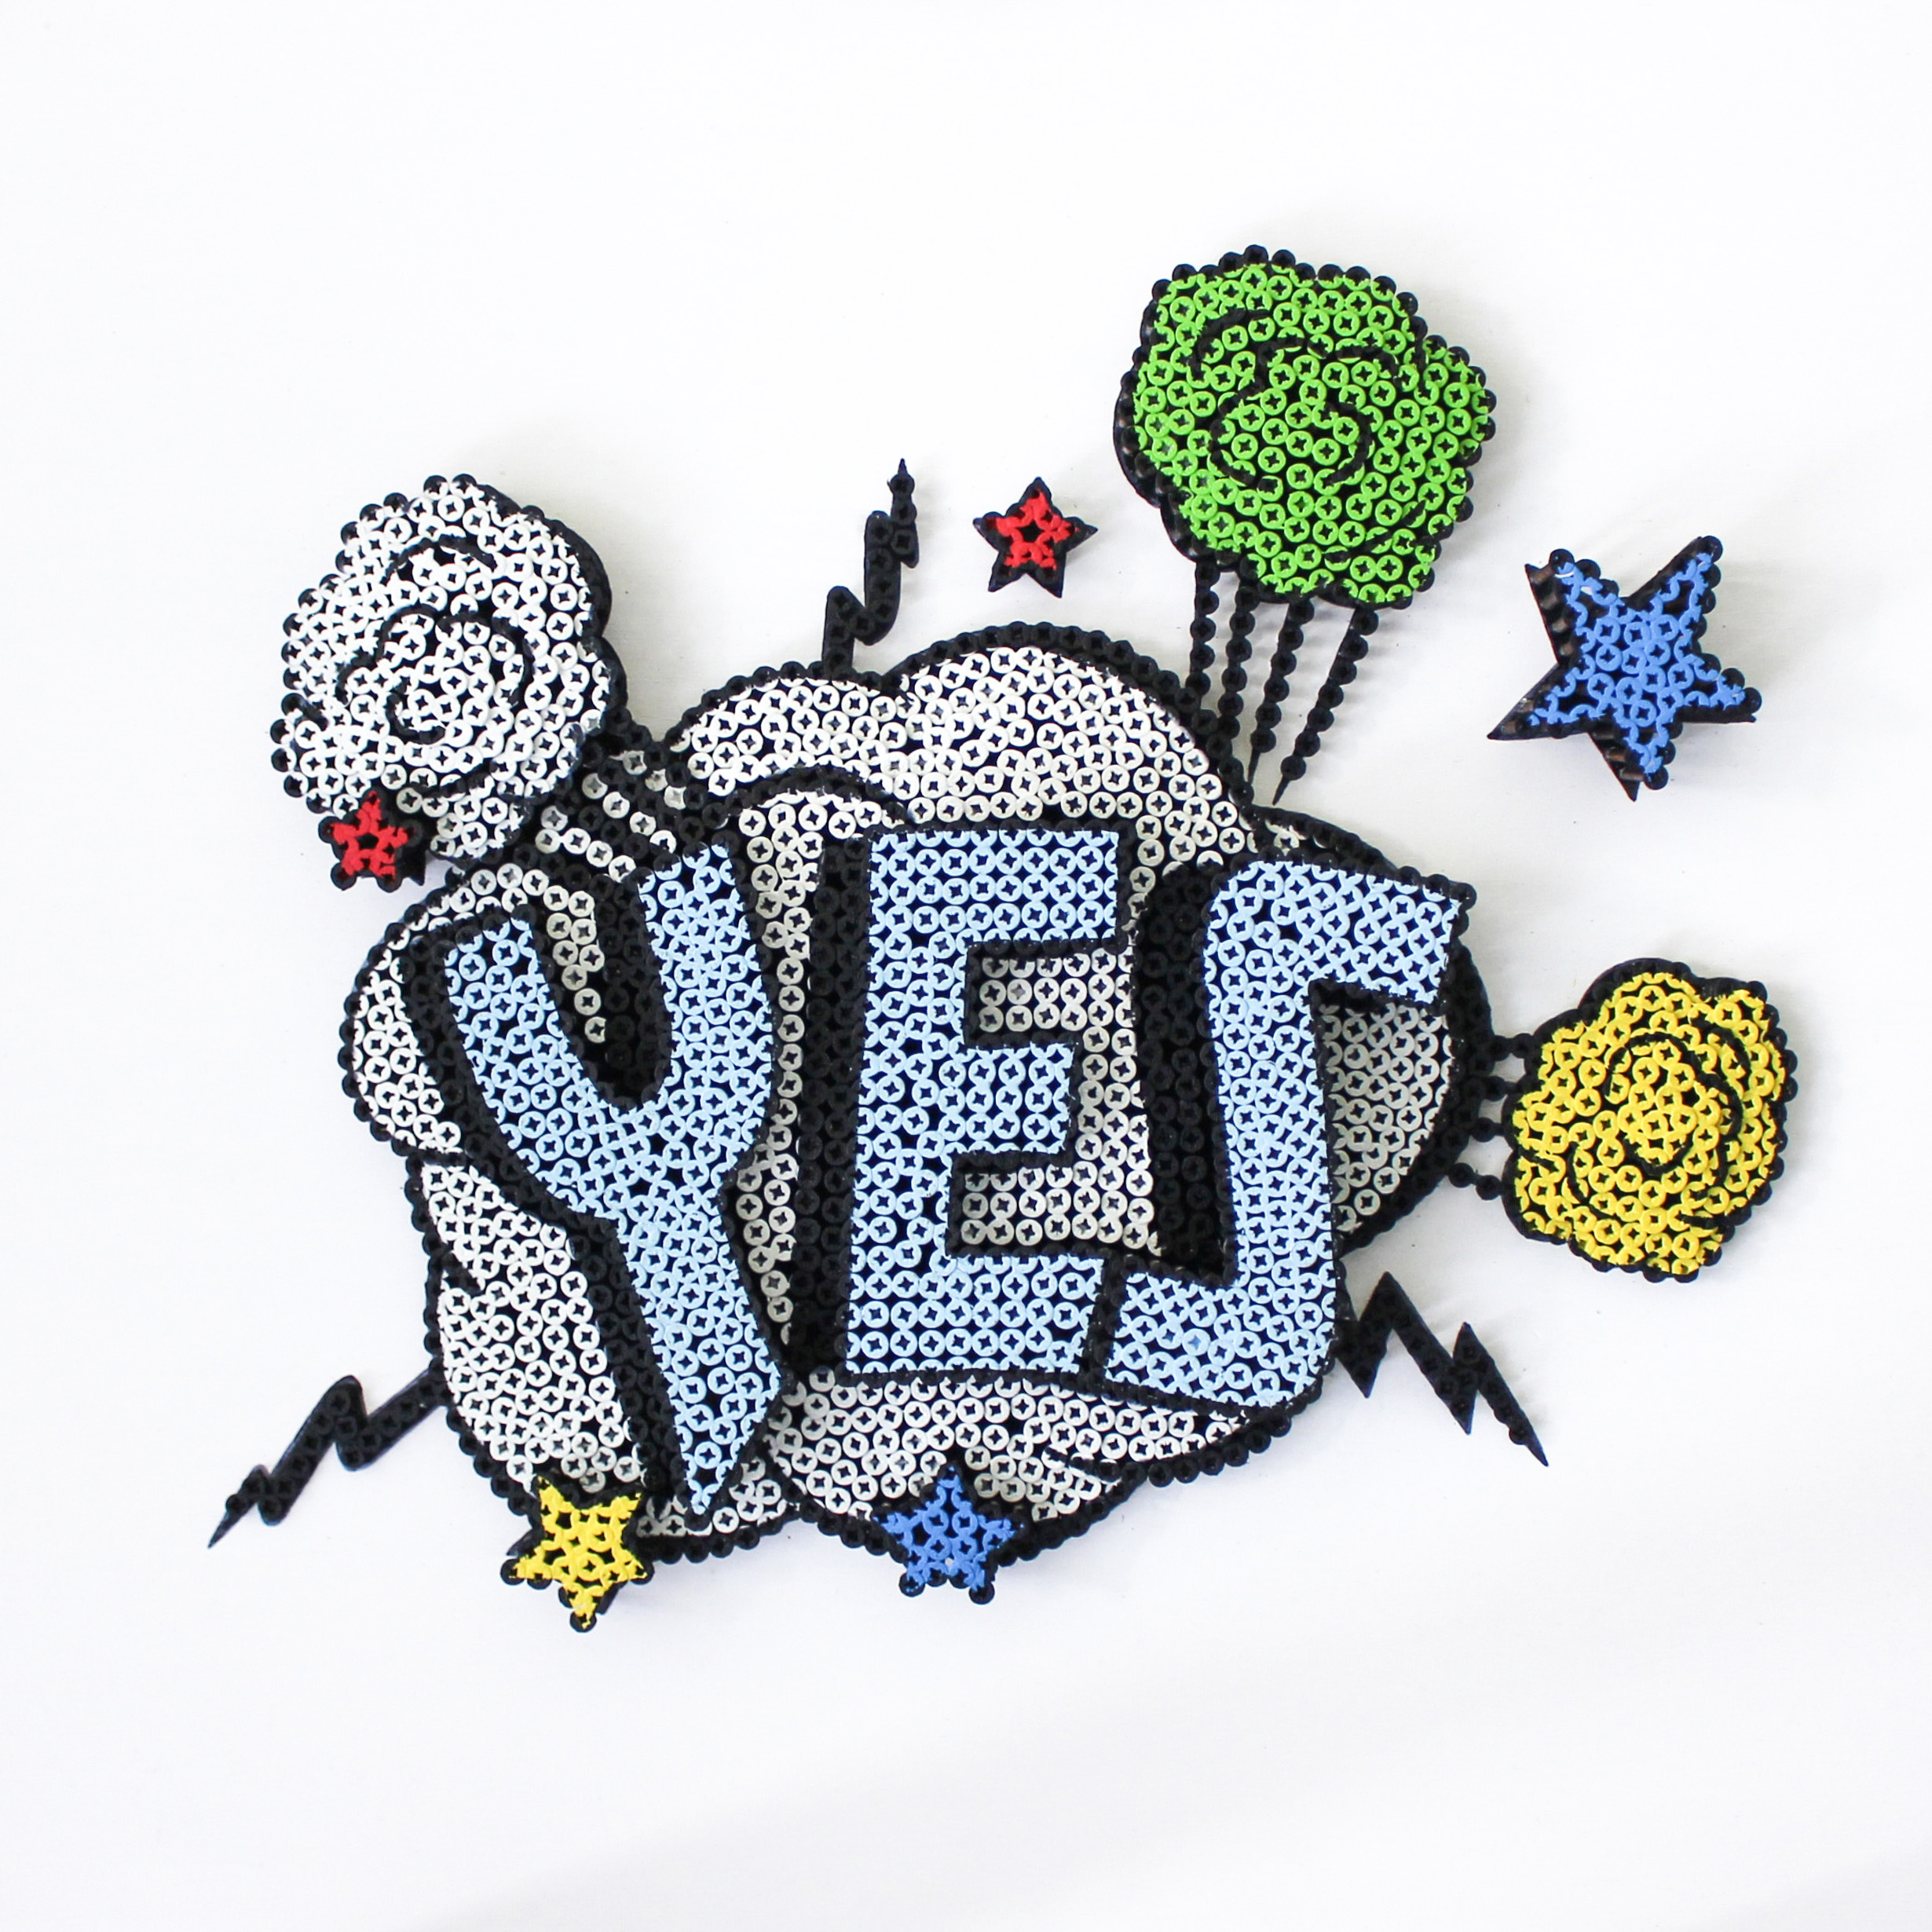 Alessandro Padovan - Screw art - Yes Pop